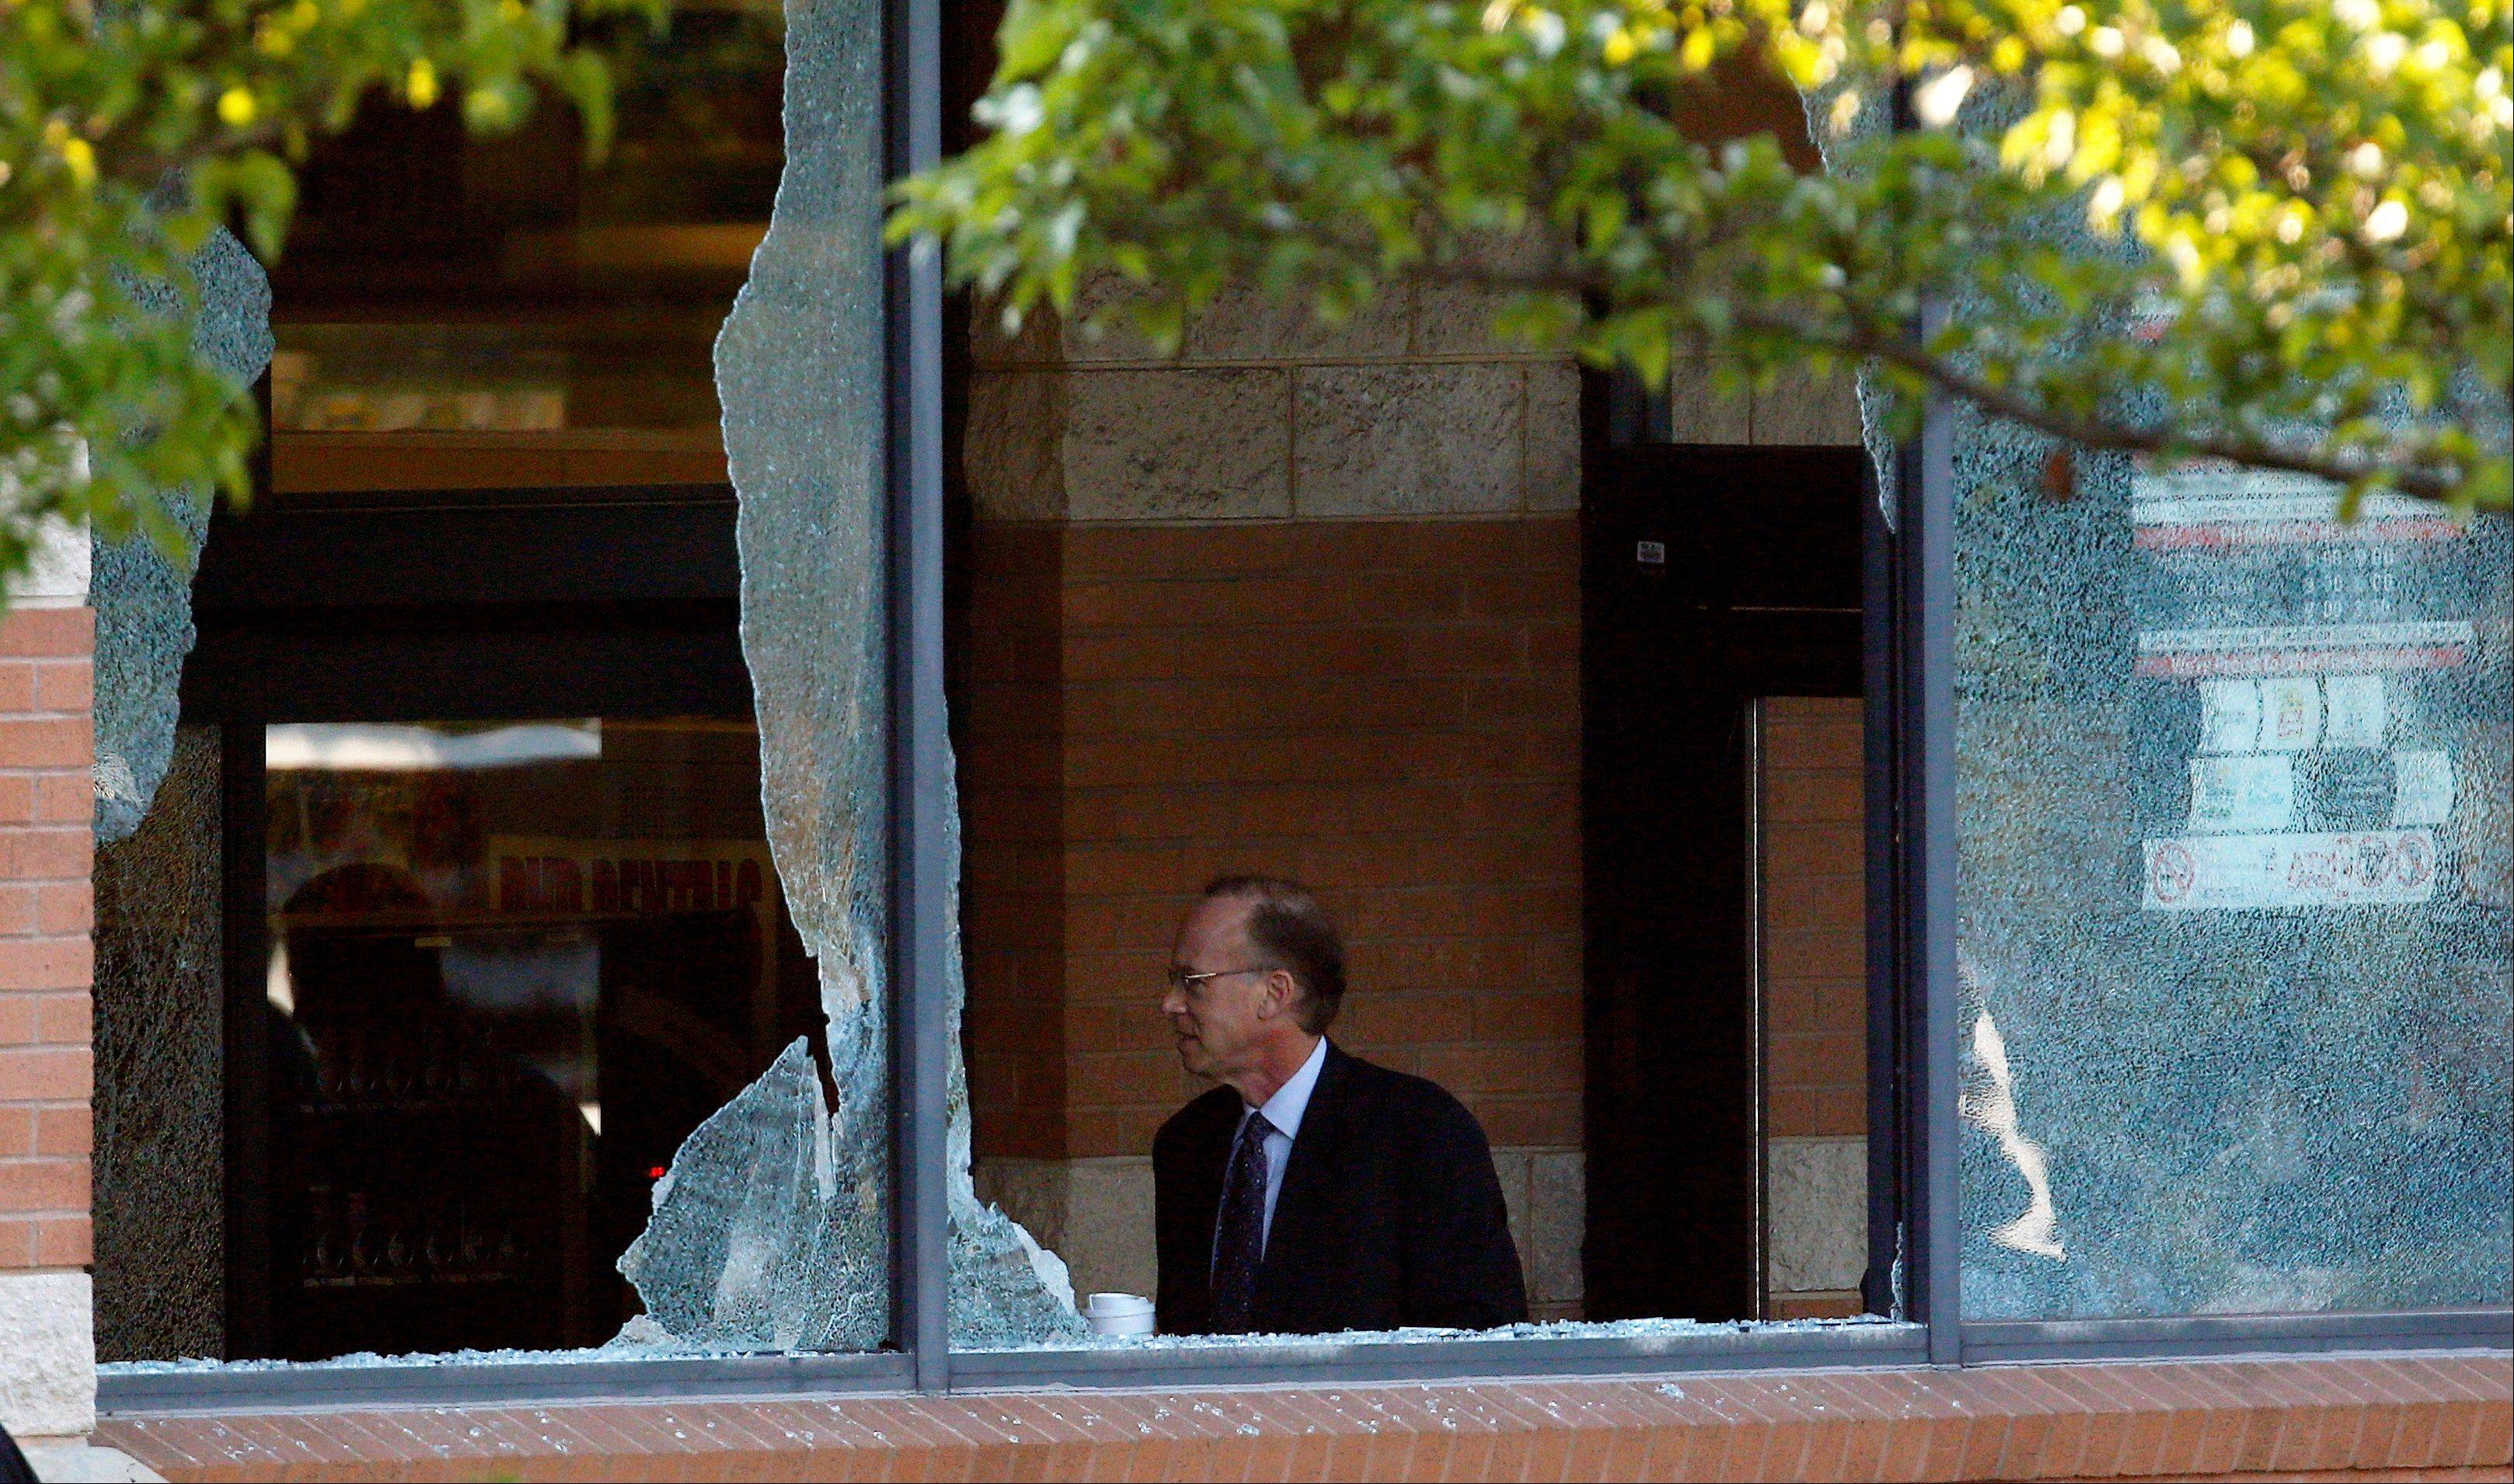 Middlesex County prosecutor Bruce Kaplan is seen through two broken windows as he arrives at the scene of a shooting at a Pathmark grocery store in Old Bridge, N.J., Friday, Aug. 31, 2012. At least three people have died in the shooting. A law enforcement official briefed on the shooting says the person believed to be the shooter is among the dead.